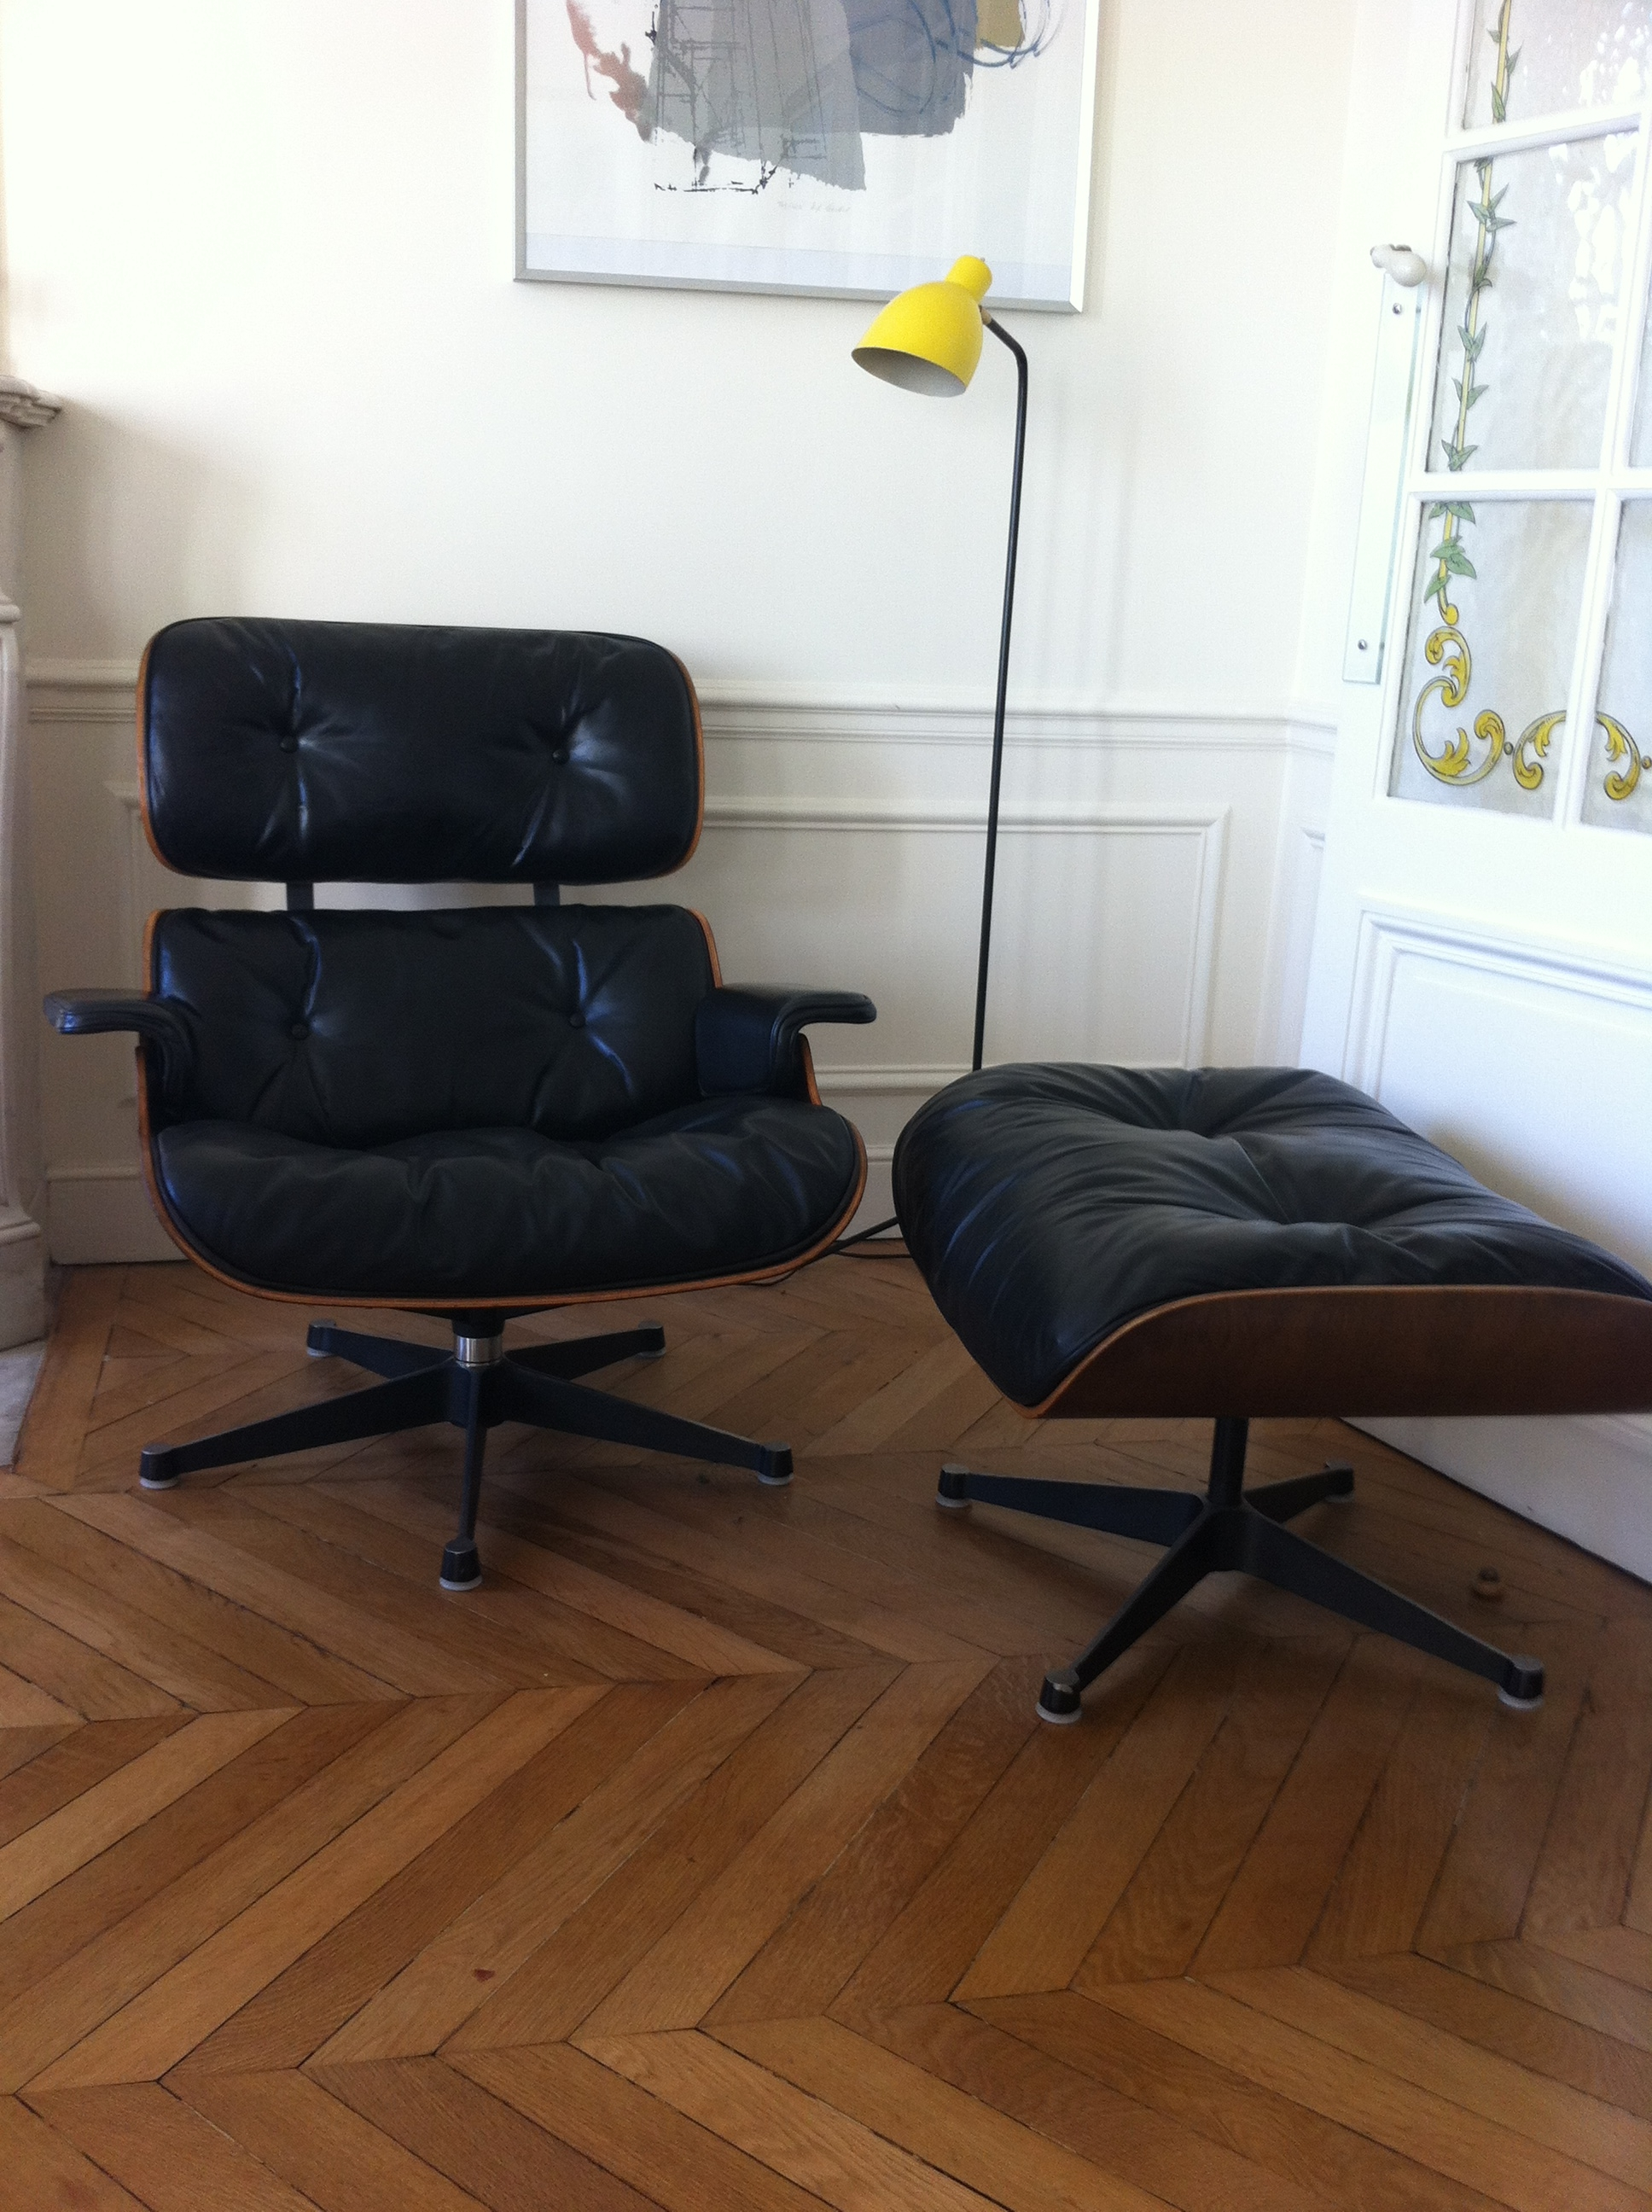 Fauteuil lounge chair eames dition herman miller l for Fauteuil eames cuir